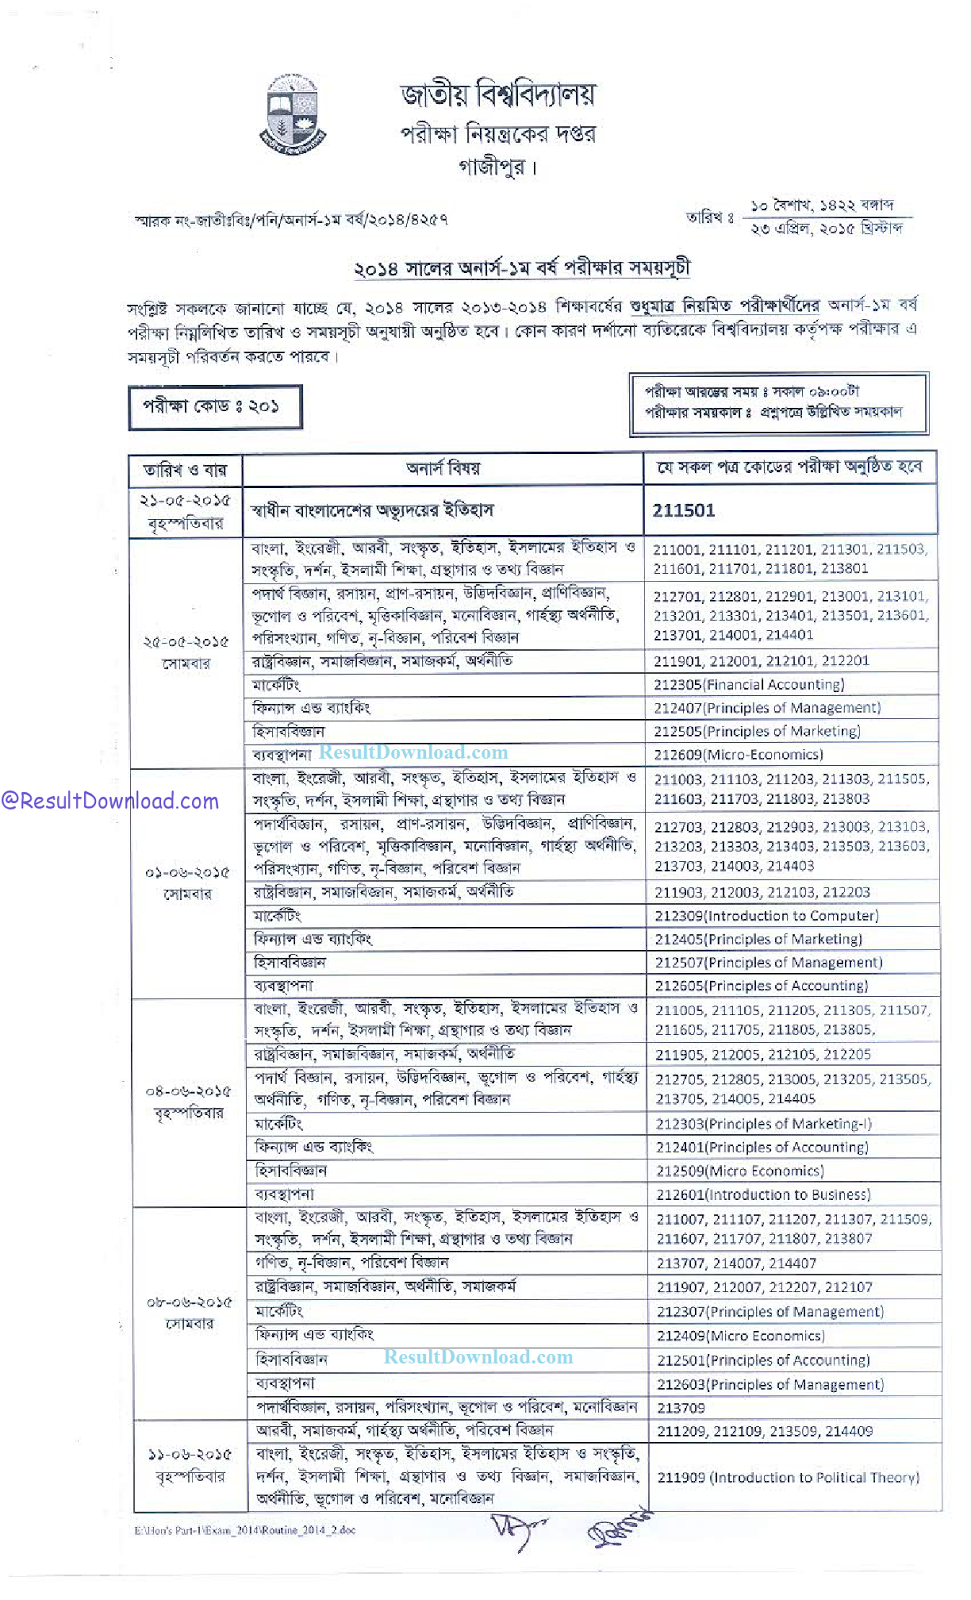 nu hons 1st year exam 2014, honours 1st year exam 2014 routine download, nu hons routine 2015